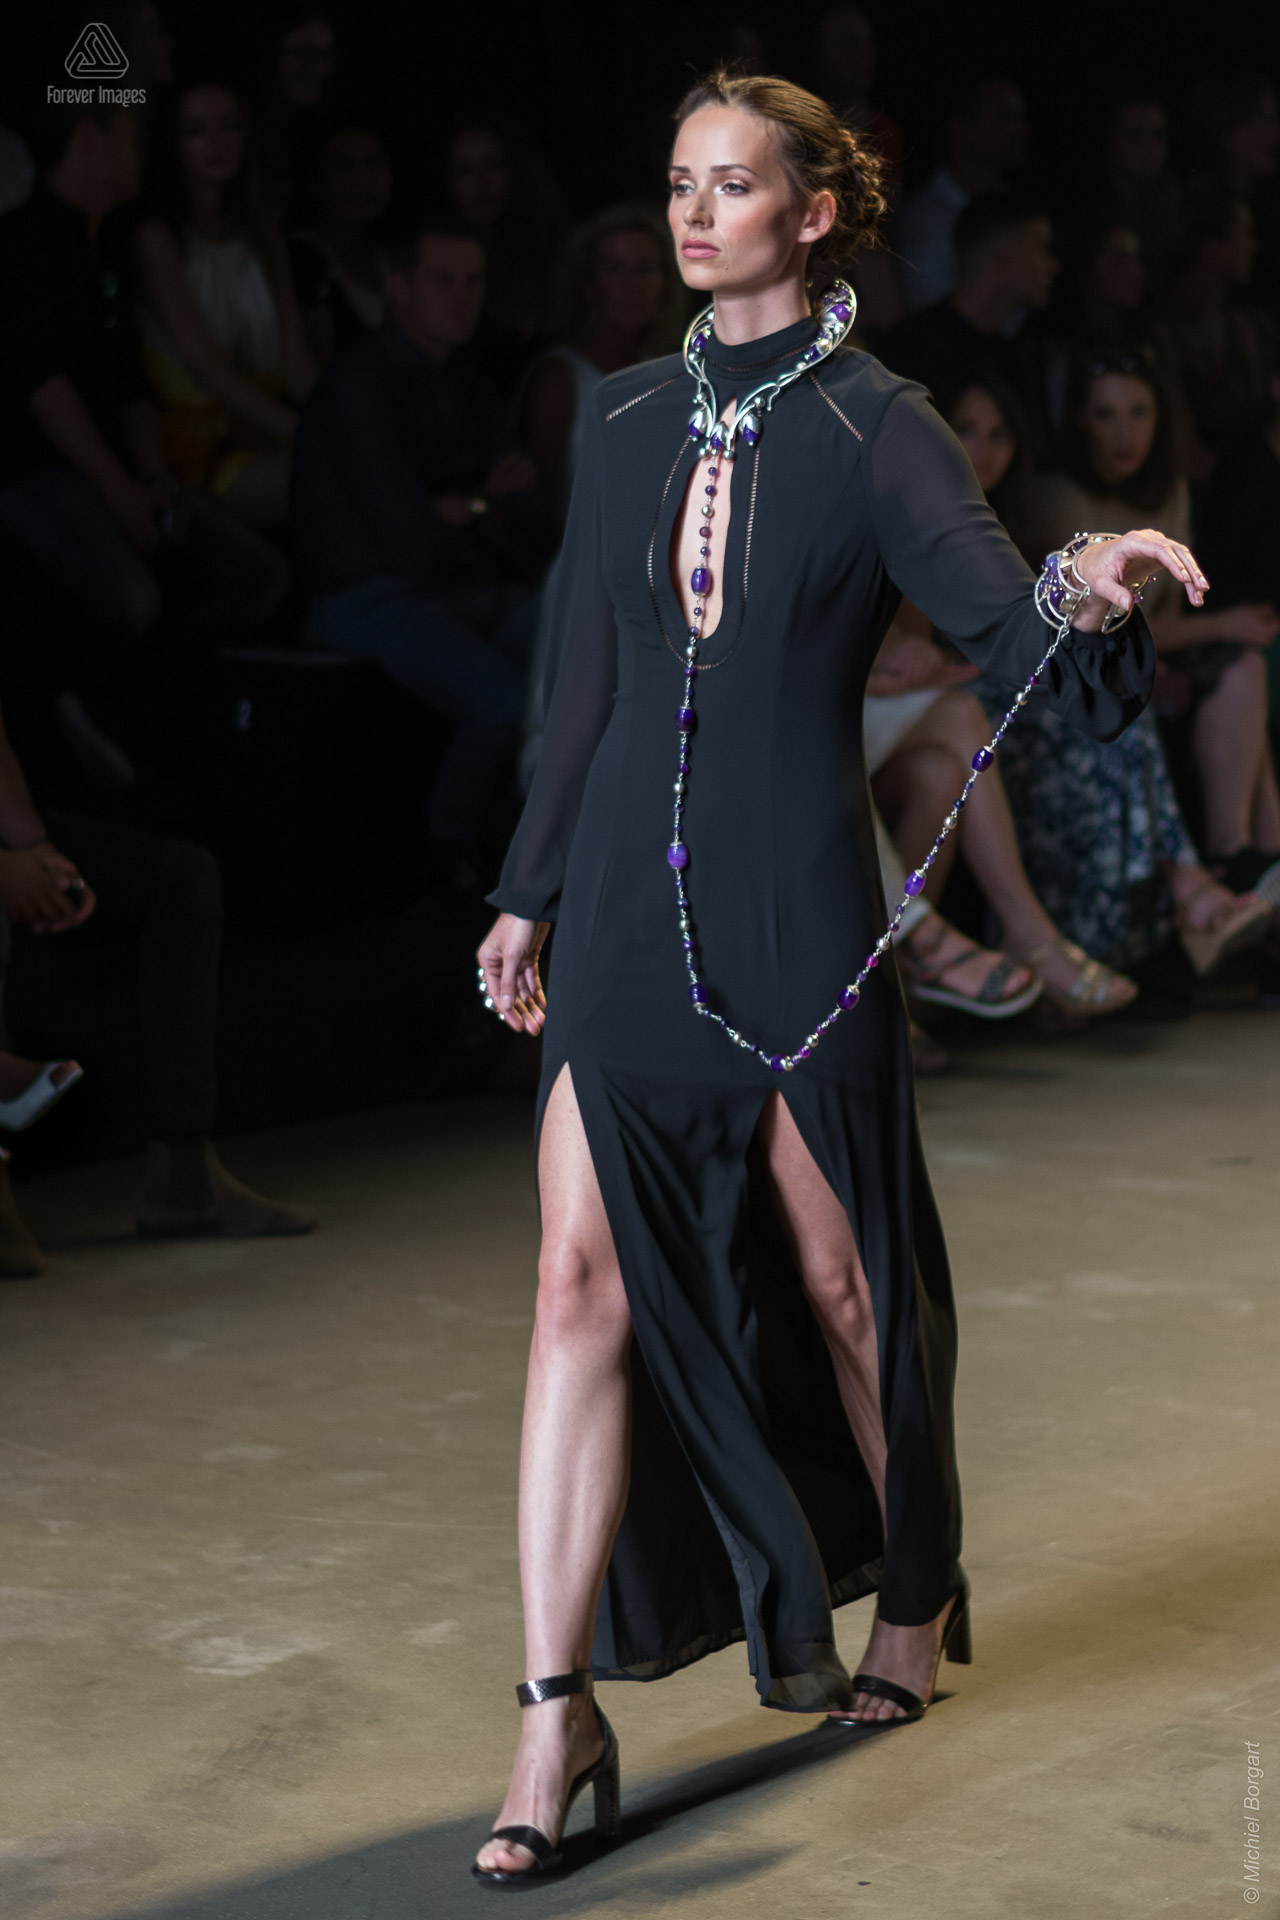 Fashion photo model in black dress with long necklace Amsterdam Fashion Week | Fashion Photographer Michiel Borgart Forever Images.